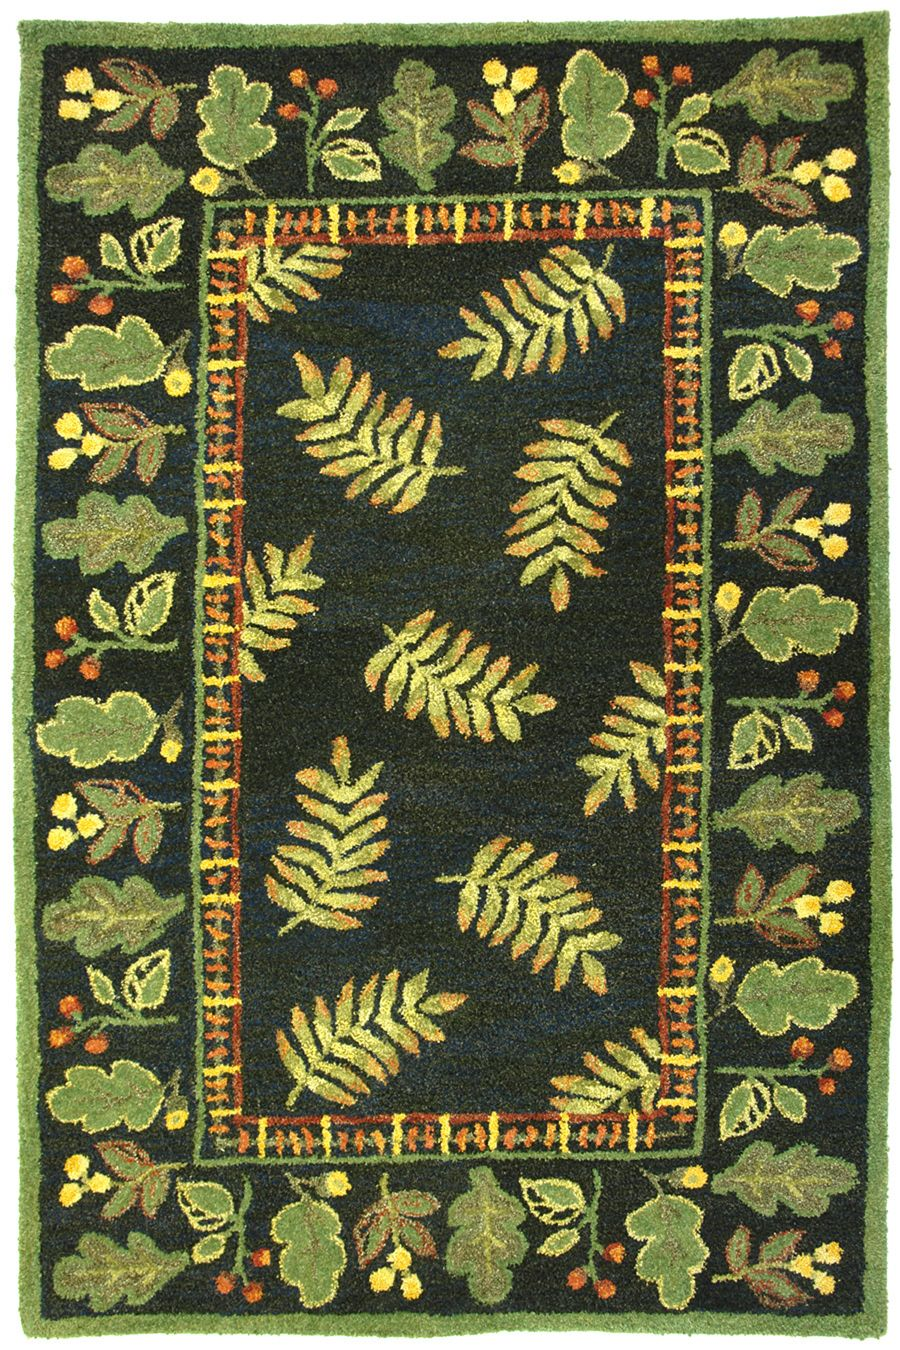 homefires wildwood w-border contemporary area rug collection